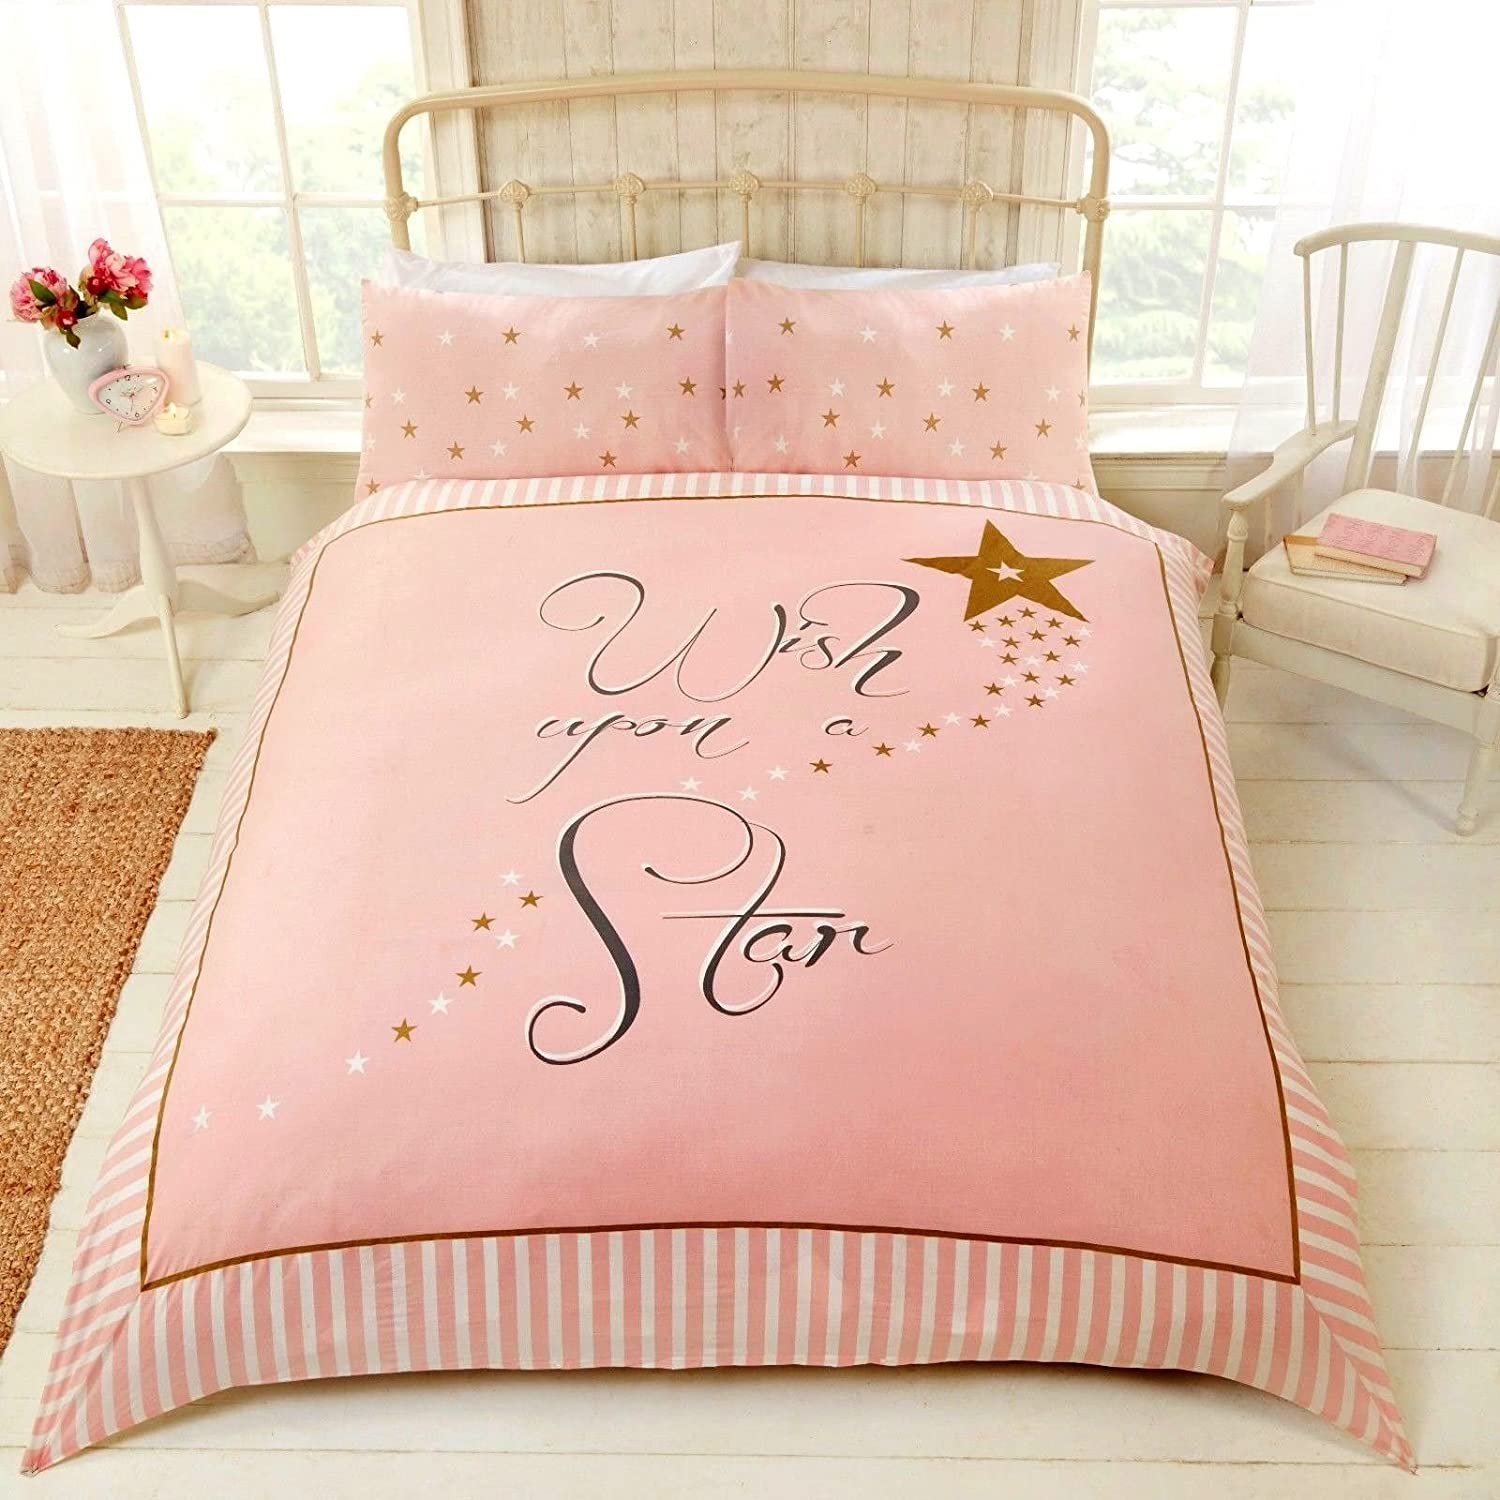 Wish Upon A Star Pink Duvet Cover Set Double Amazon Co Uk Kitchen Home